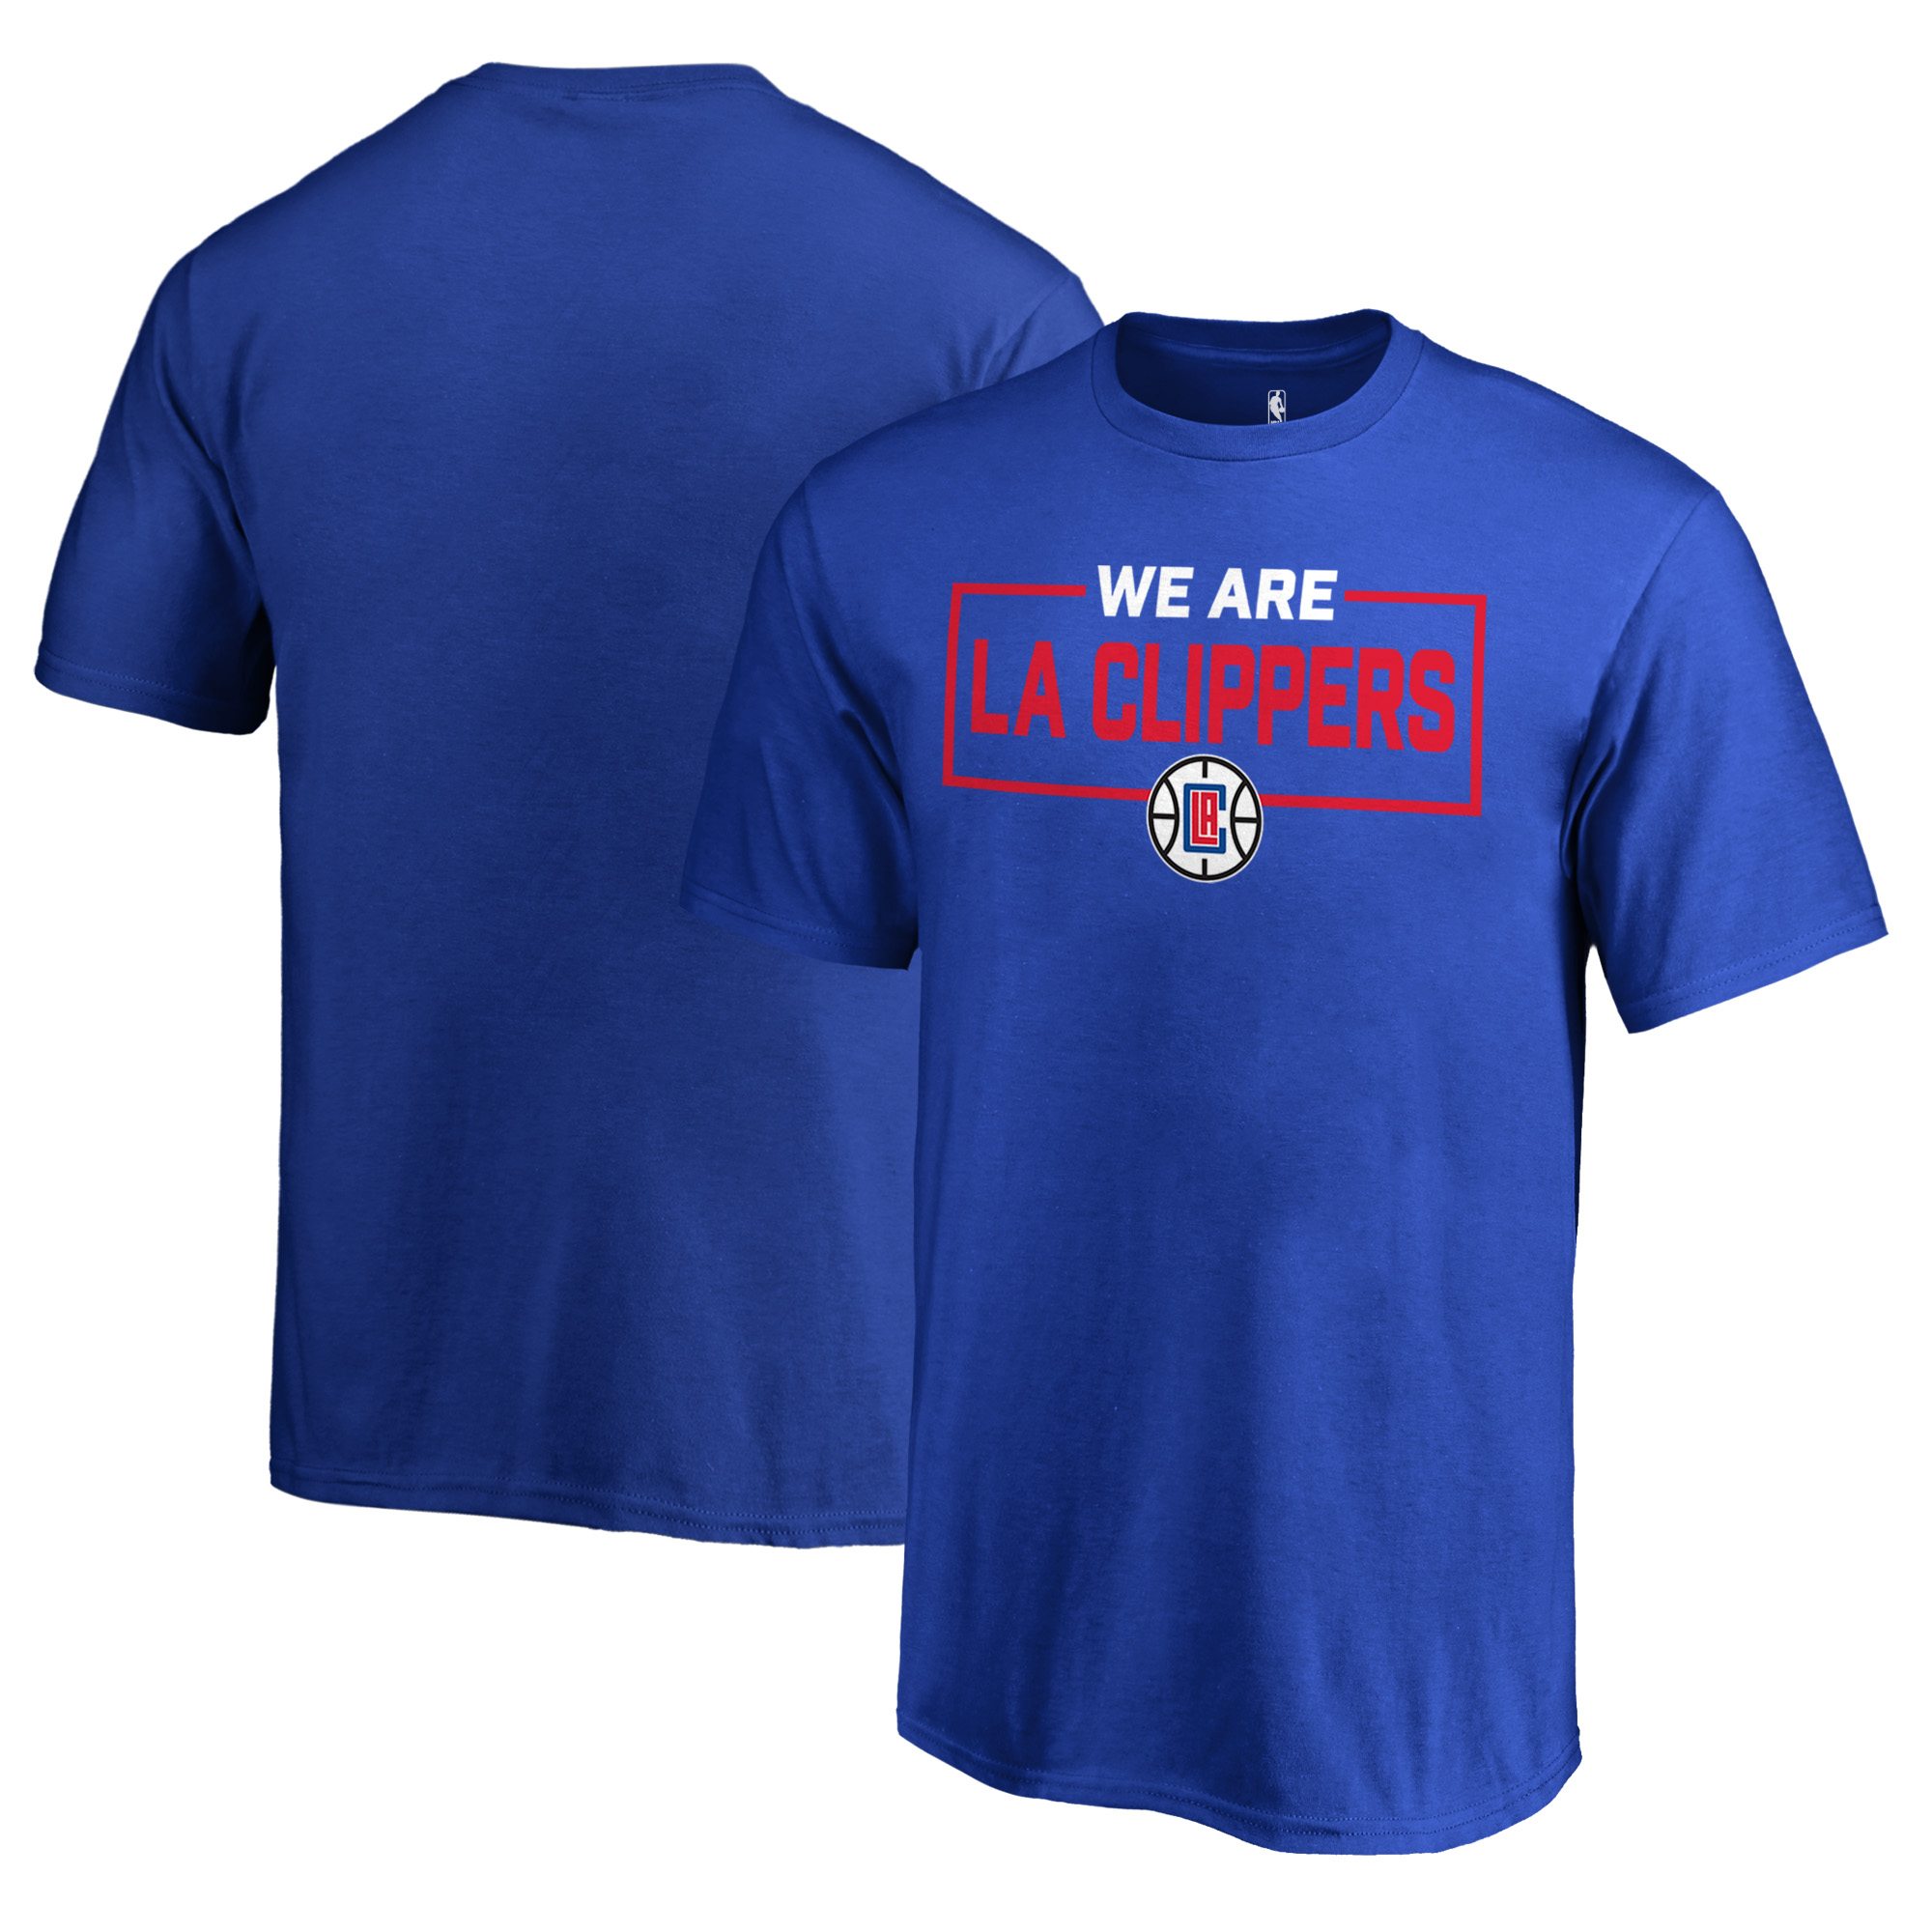 LA Clippers Fanatics Branded Youth We Are Iconic Collection T-Shirt - Royal